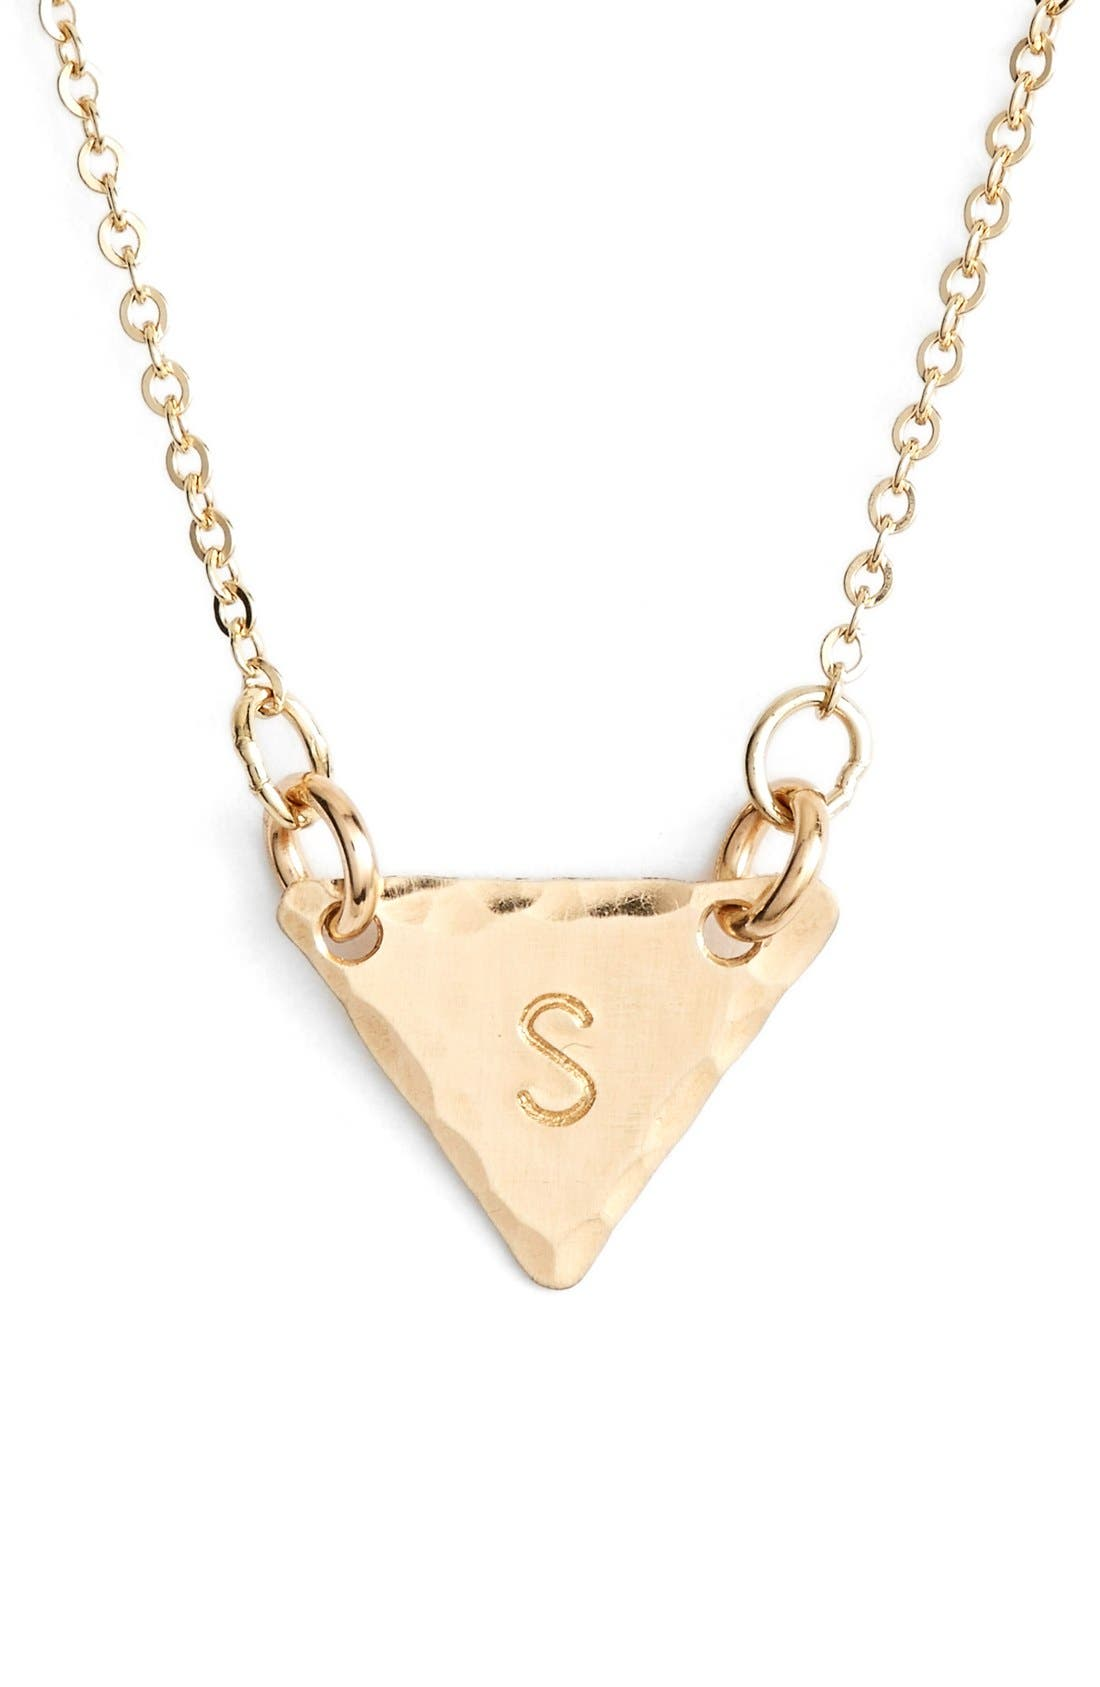 Main Image - Nashelle14k-Gold Fill Initial Triangle Necklace